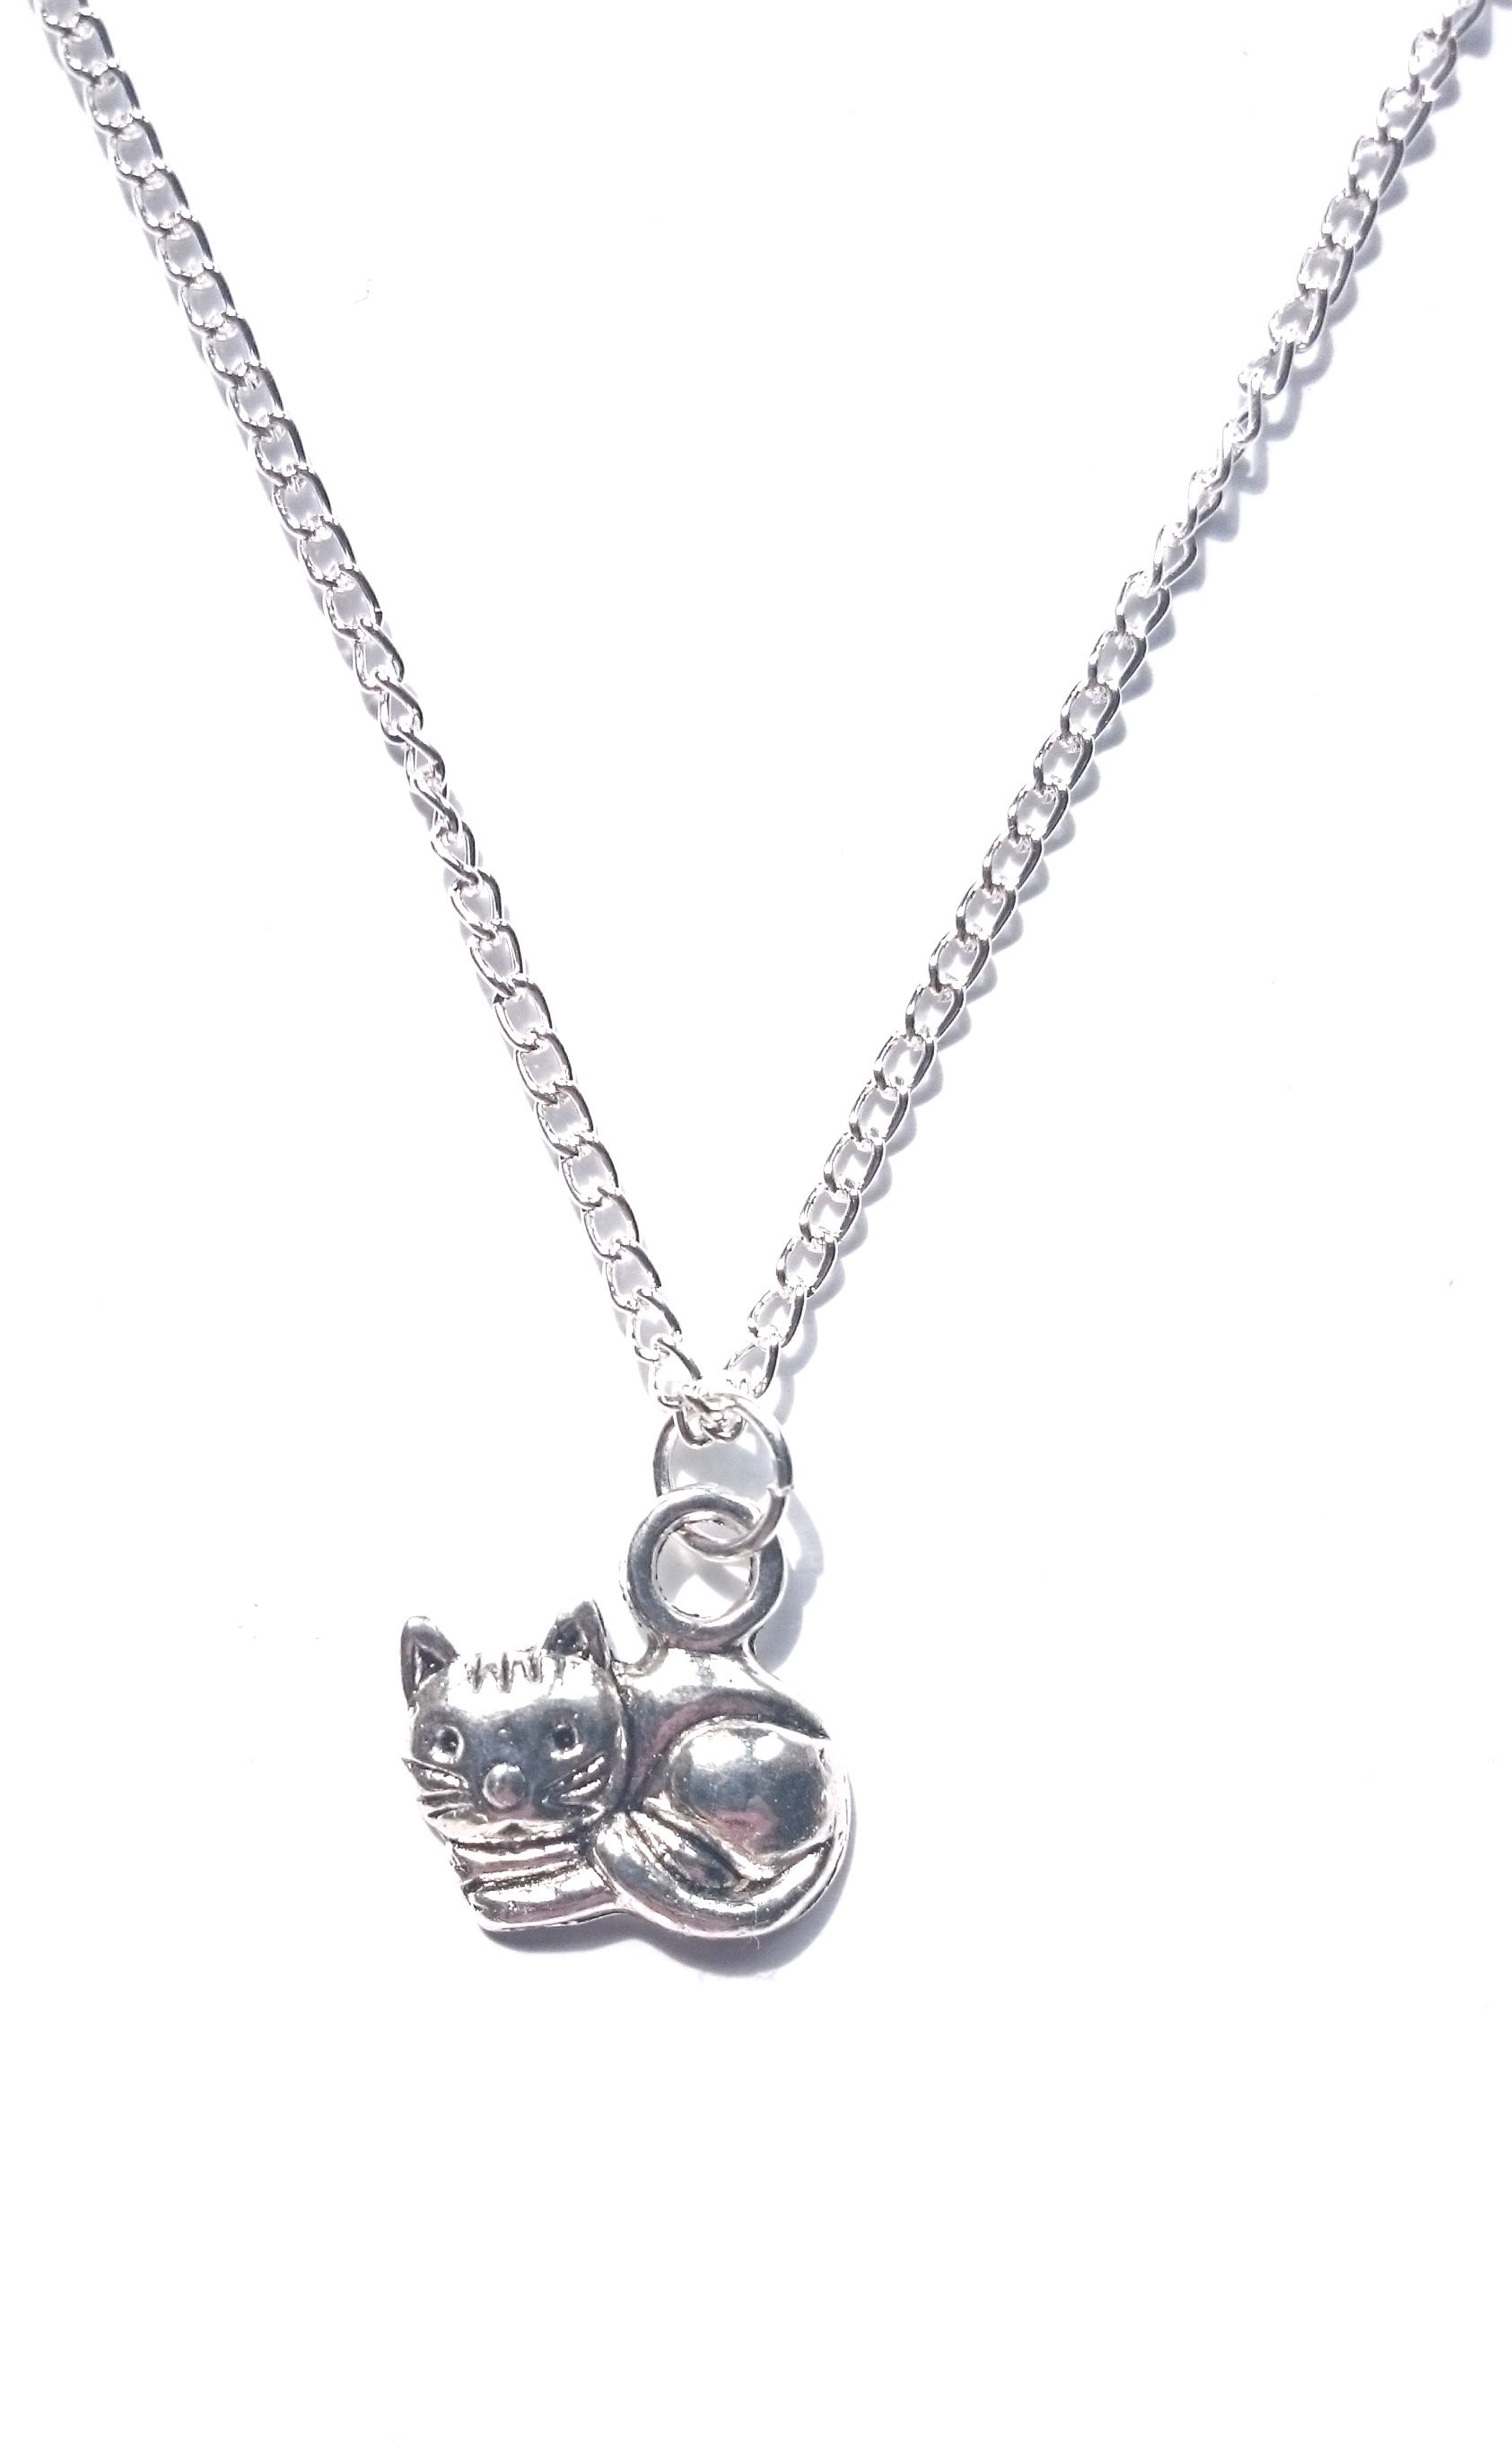 orelia necklace jewellery london products ditsy lucky cat jewelry